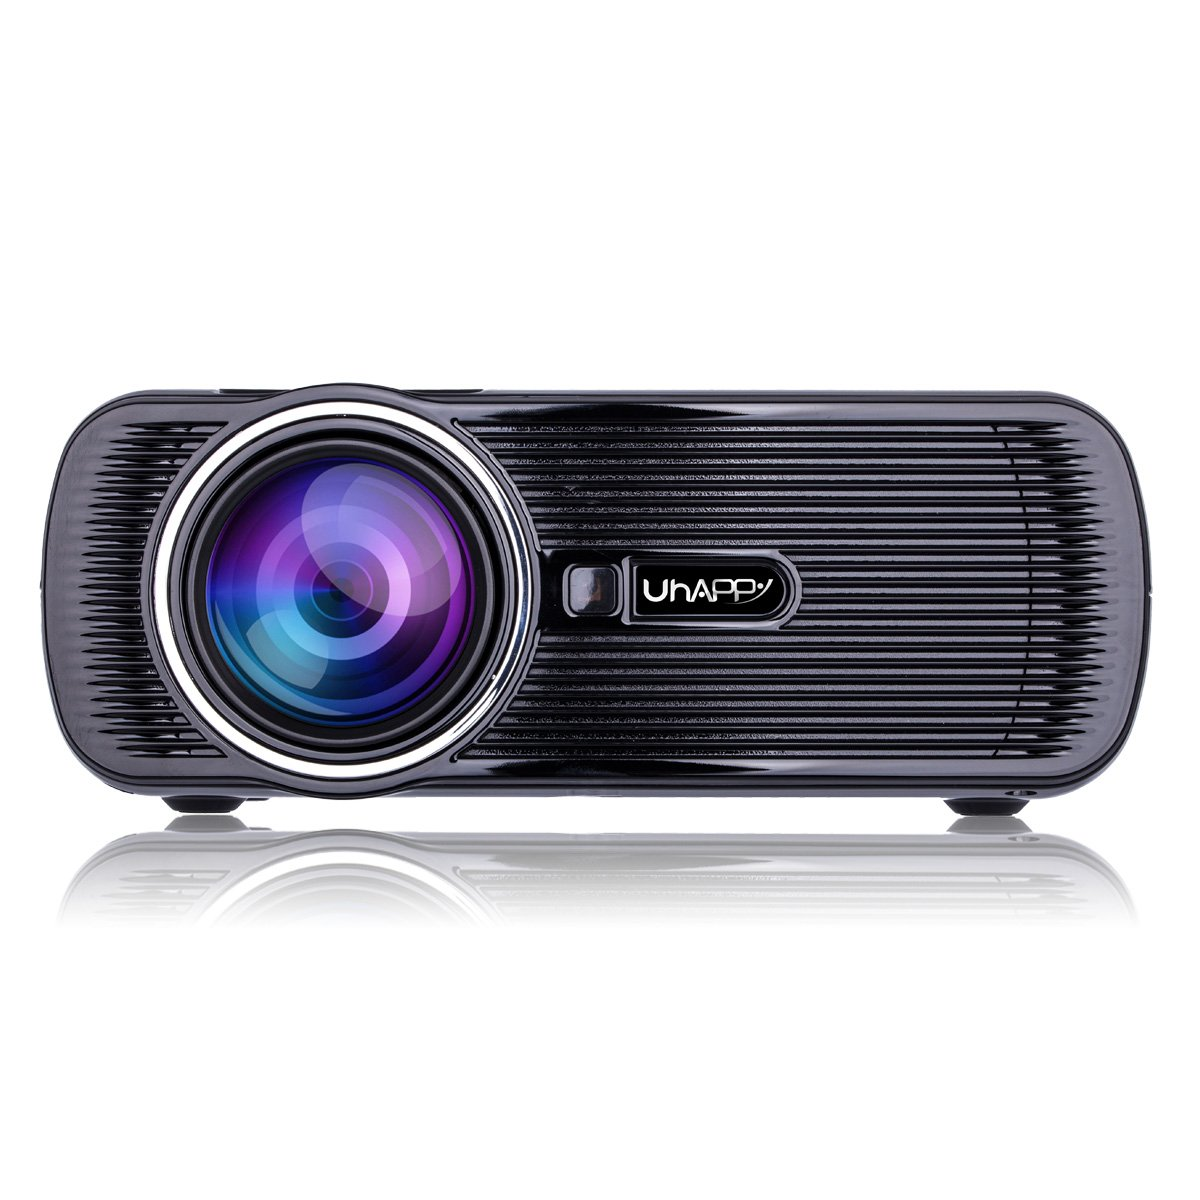 UHAPPY U80 Mini LED HD projector Portable projector (EN) - Black by U Happy (Image #2)